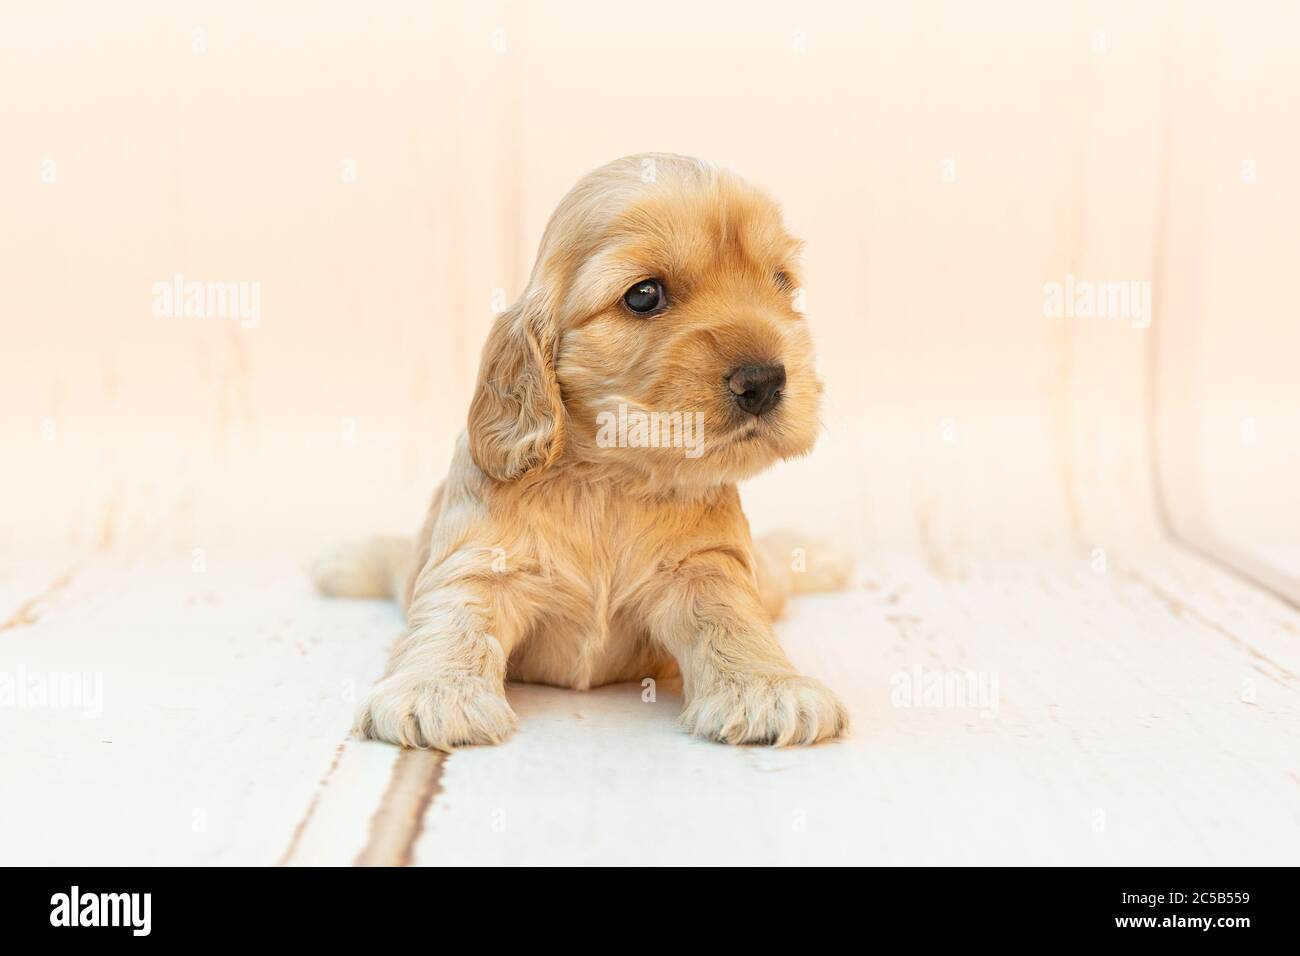 A Closeup Shot Of A Cute Cocker Spaniel Puppy With Long Ears Sitting On A White Surface Stock Photo Alamy